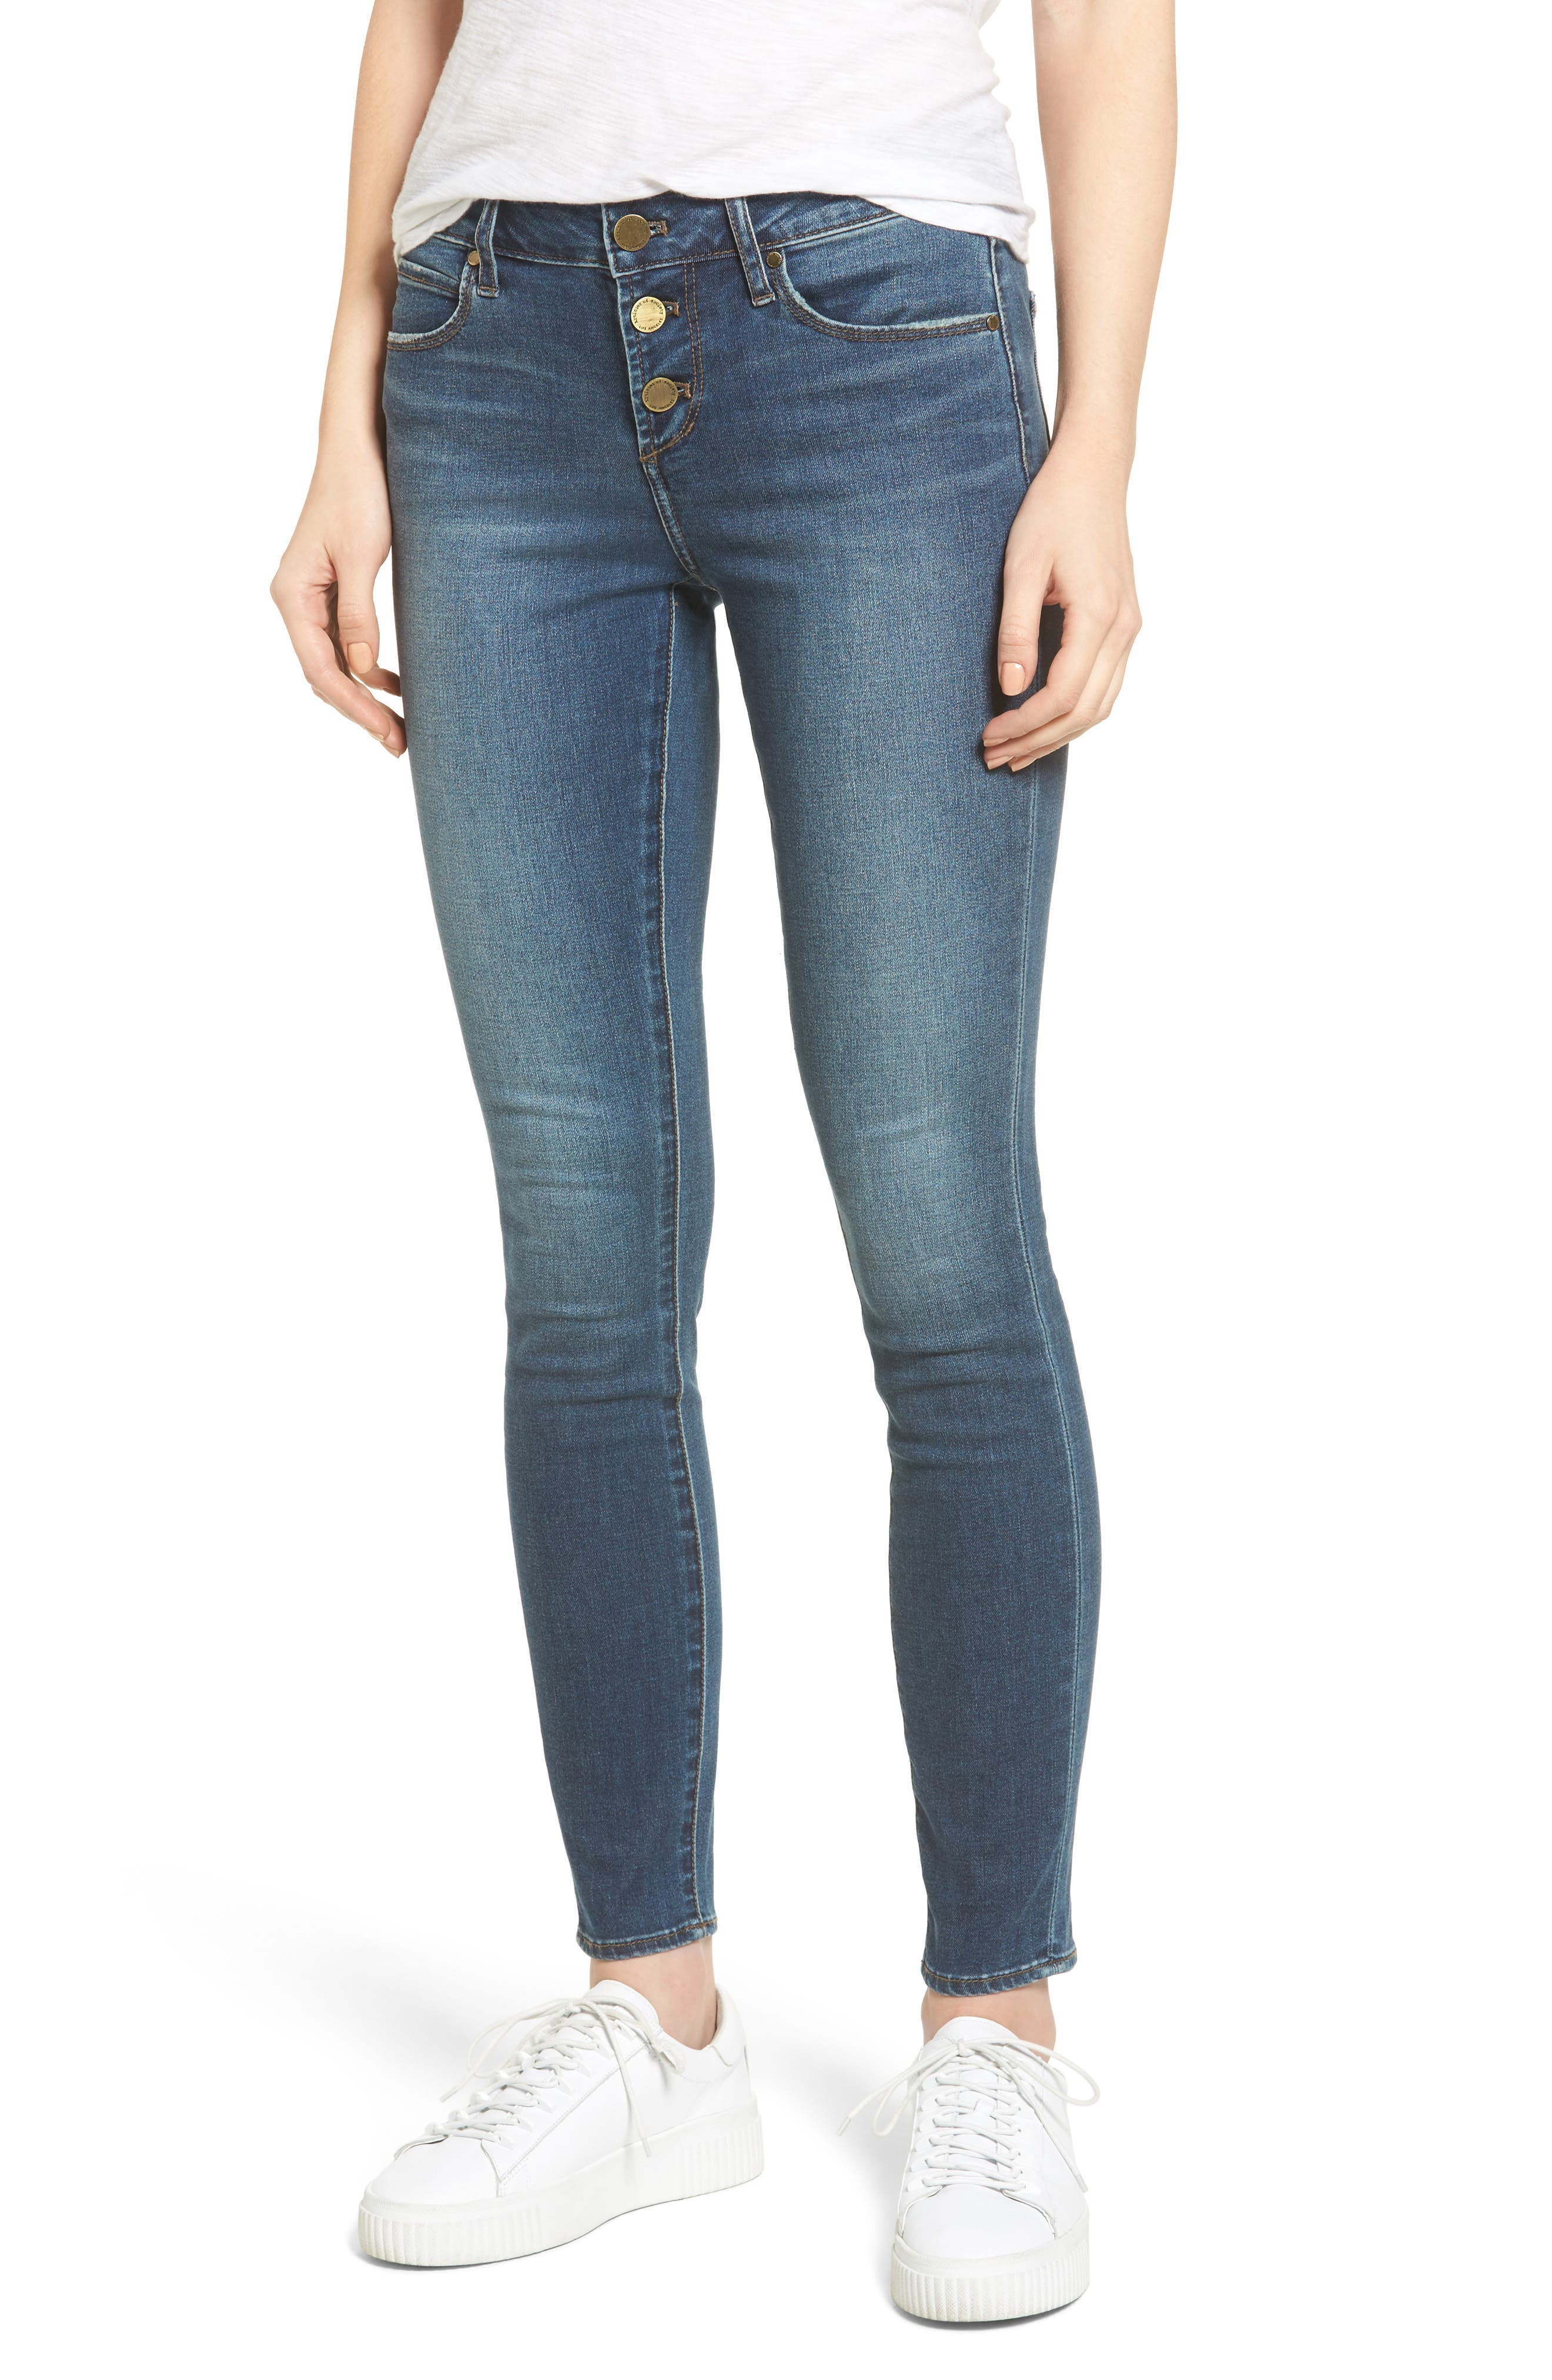 Alternate Image 1 Selected - Articles of Society Britney Skinny Jeans (Harper)